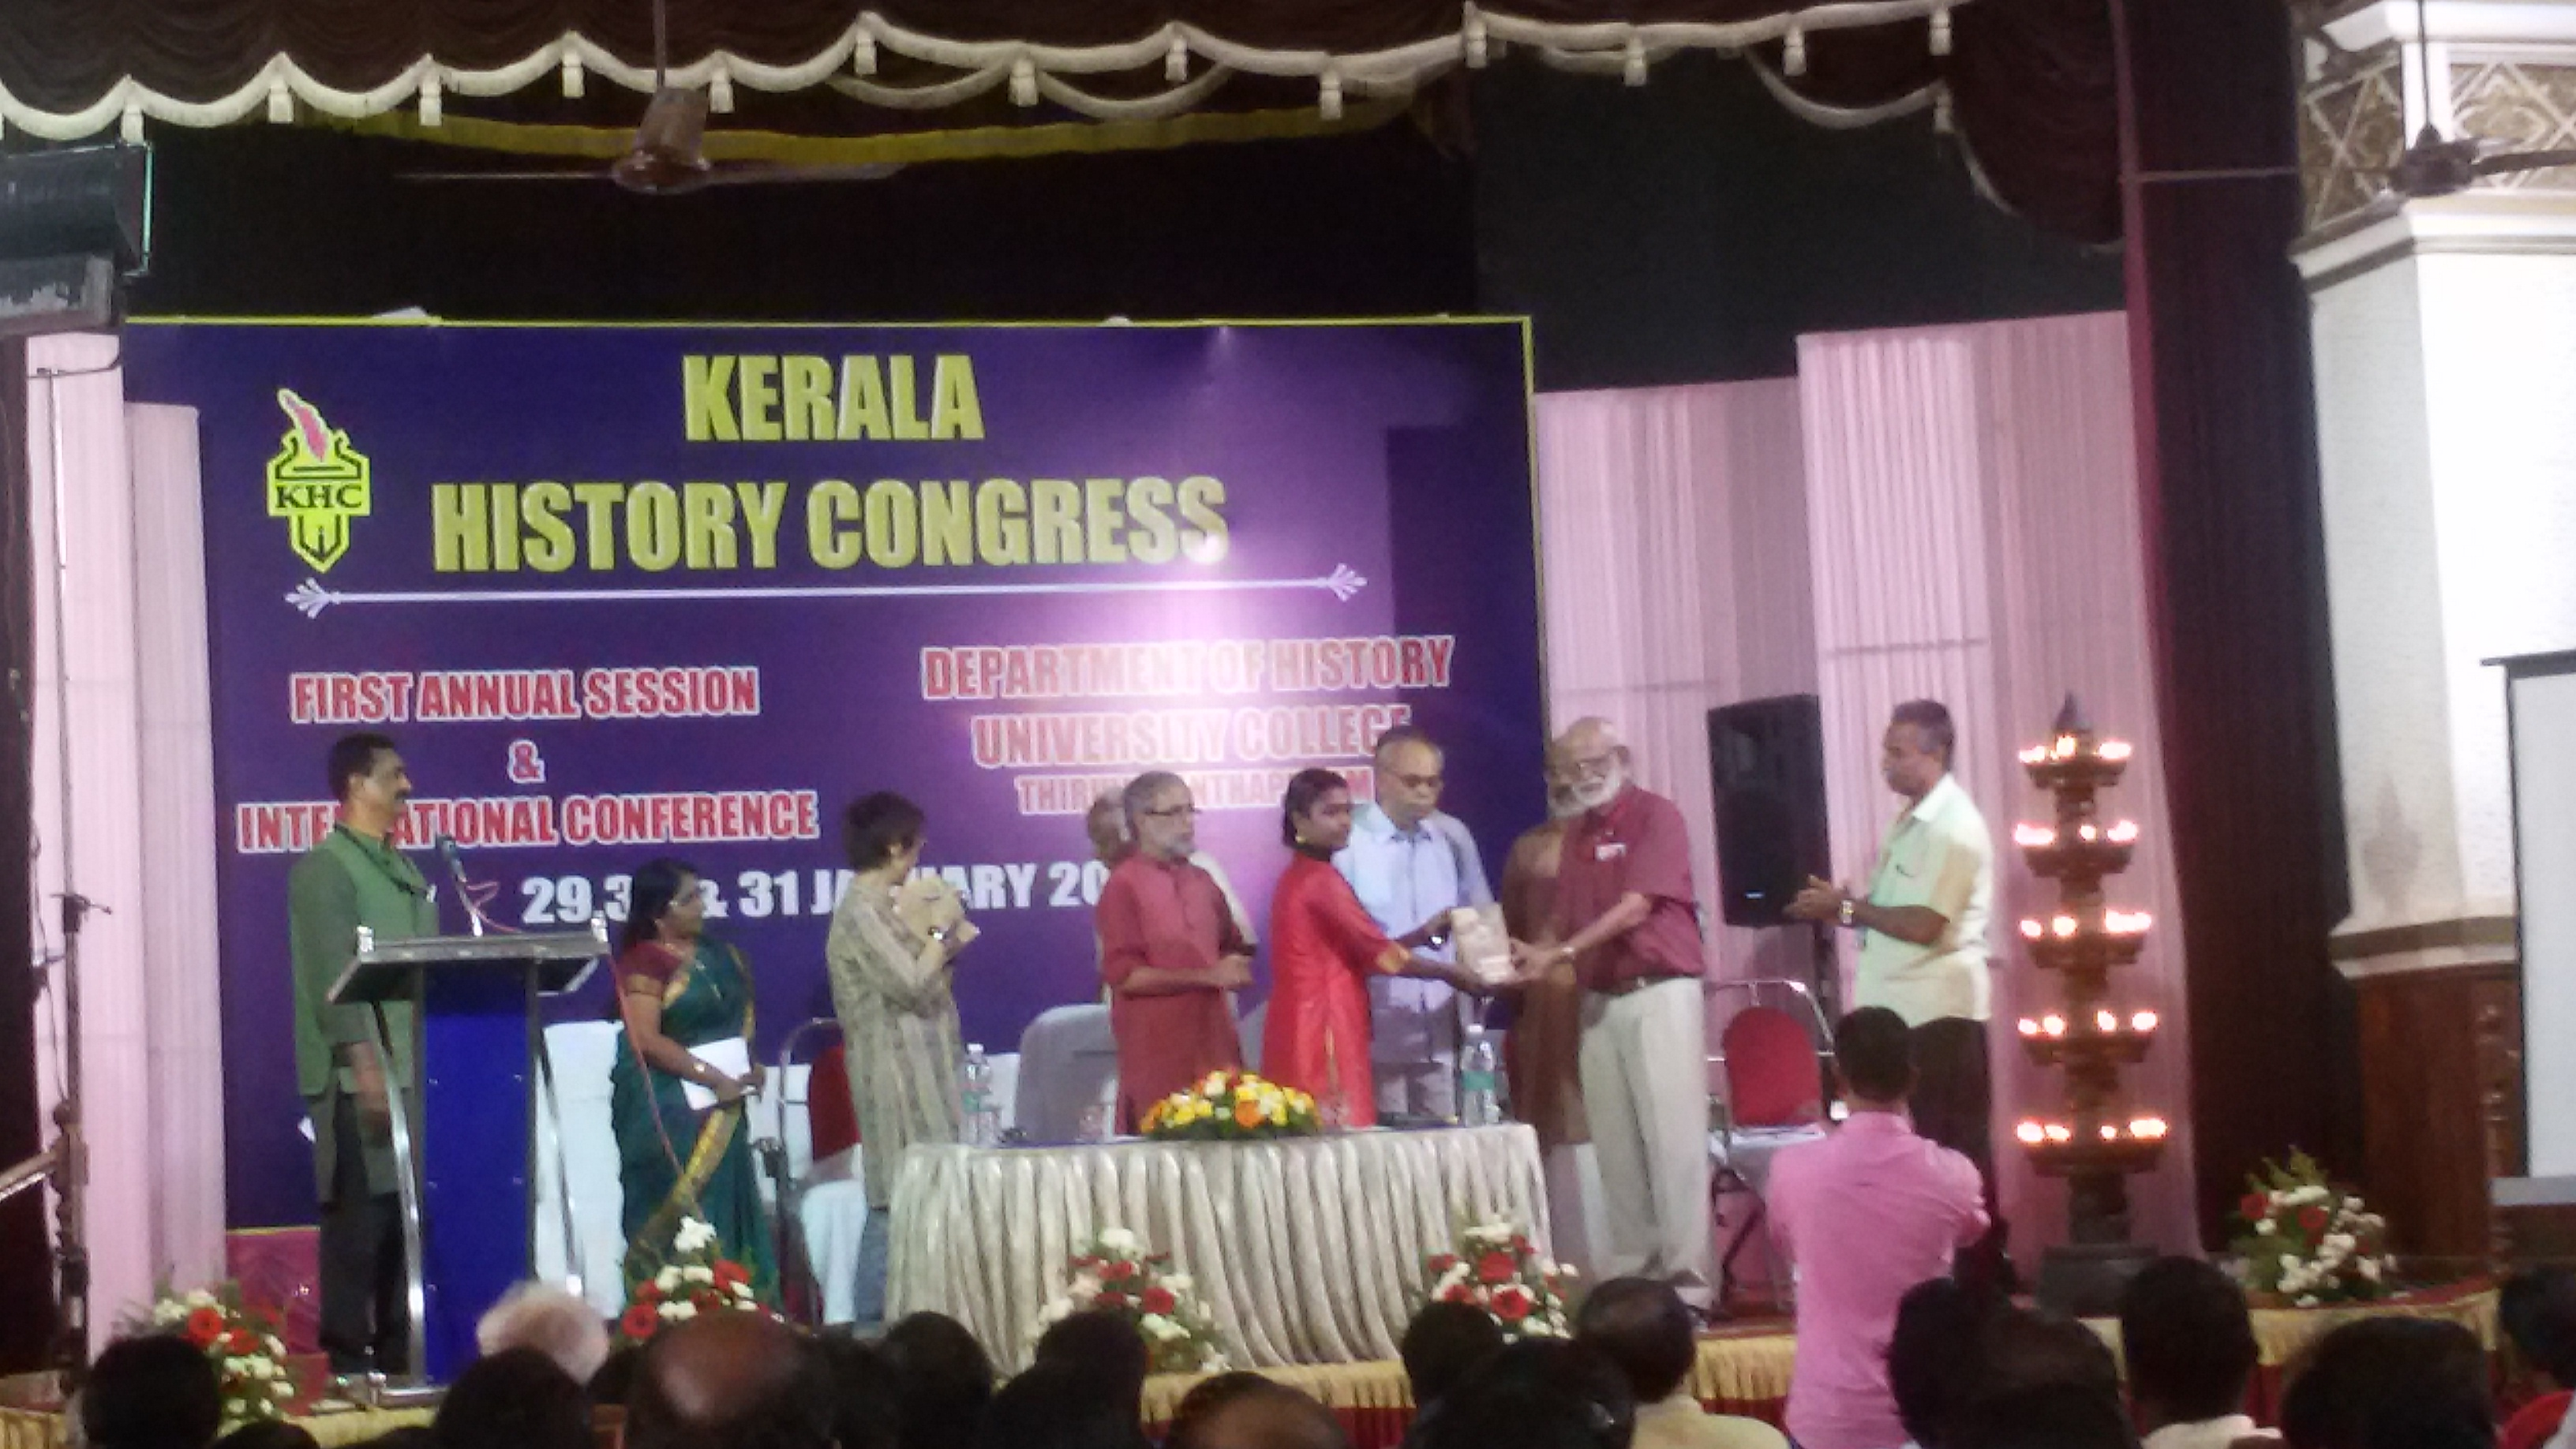 the essays on the history and society of kerala by k n panikkar the book the essays on the history and society of kerala by k n panikkar the renowned historian released in the inaugural session of the first annual